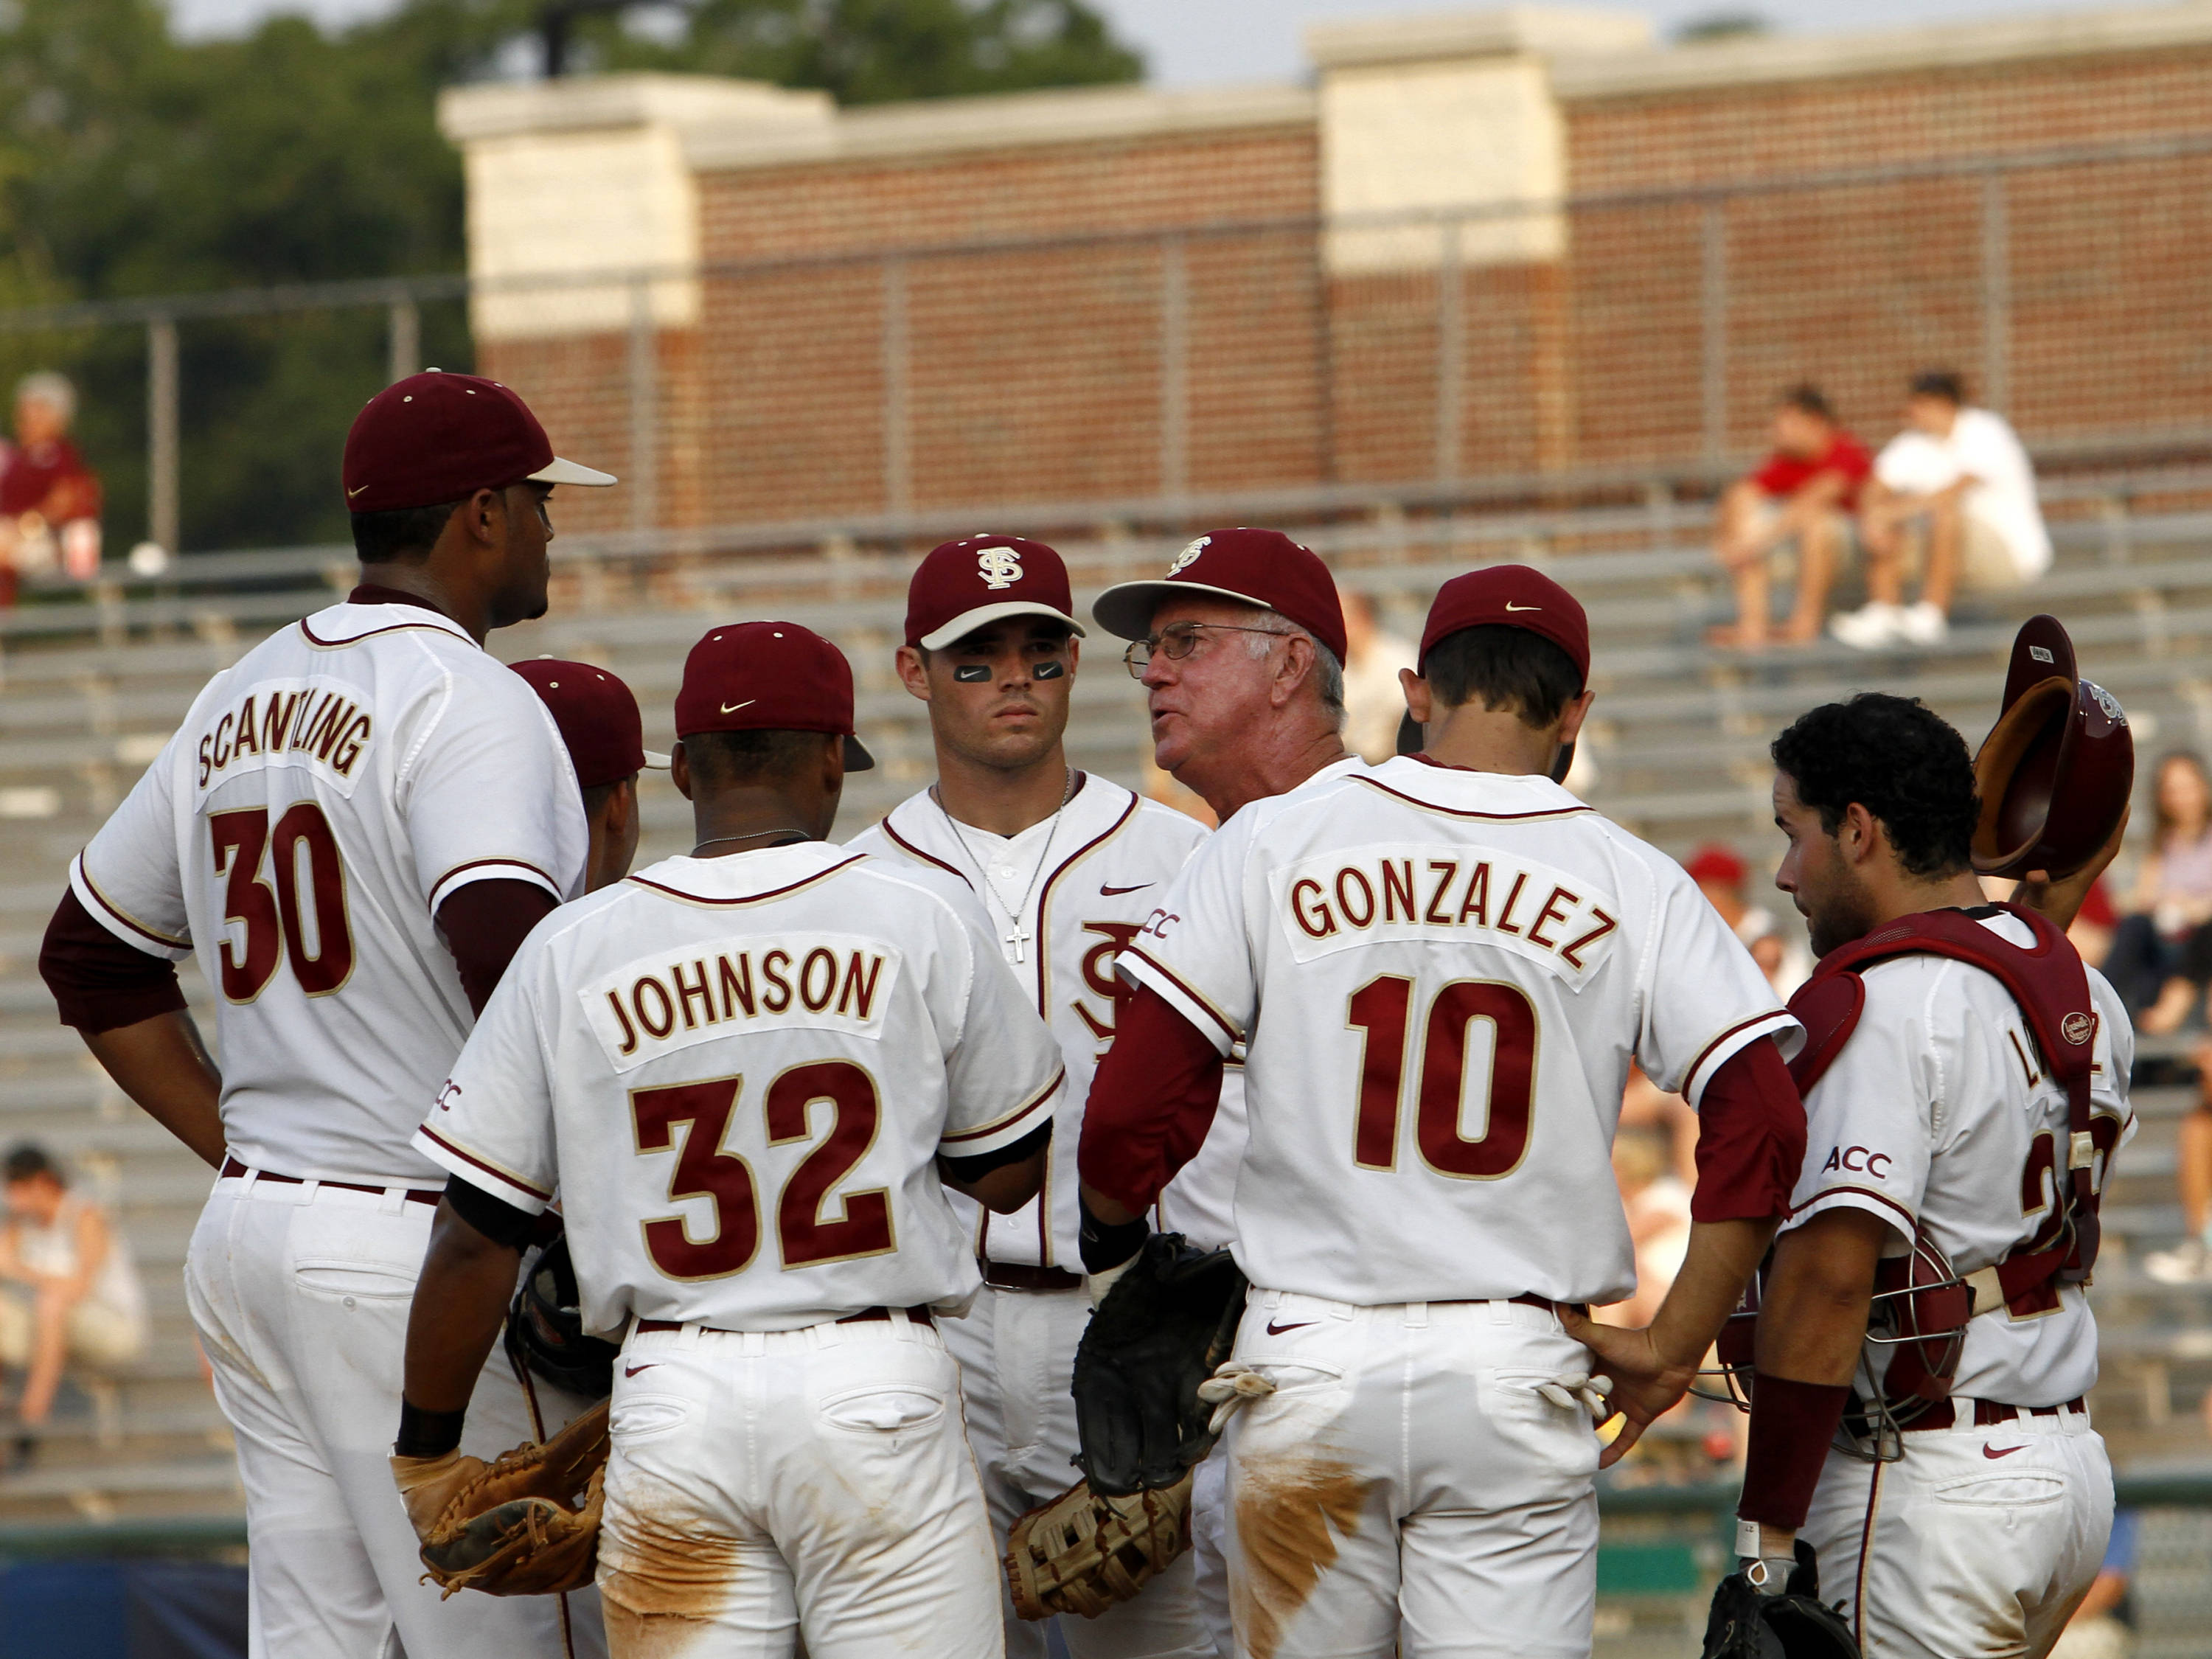 Head Coach Mike Martin with some game discussion with his pitcher Hunter Scantling (30) and his infield.